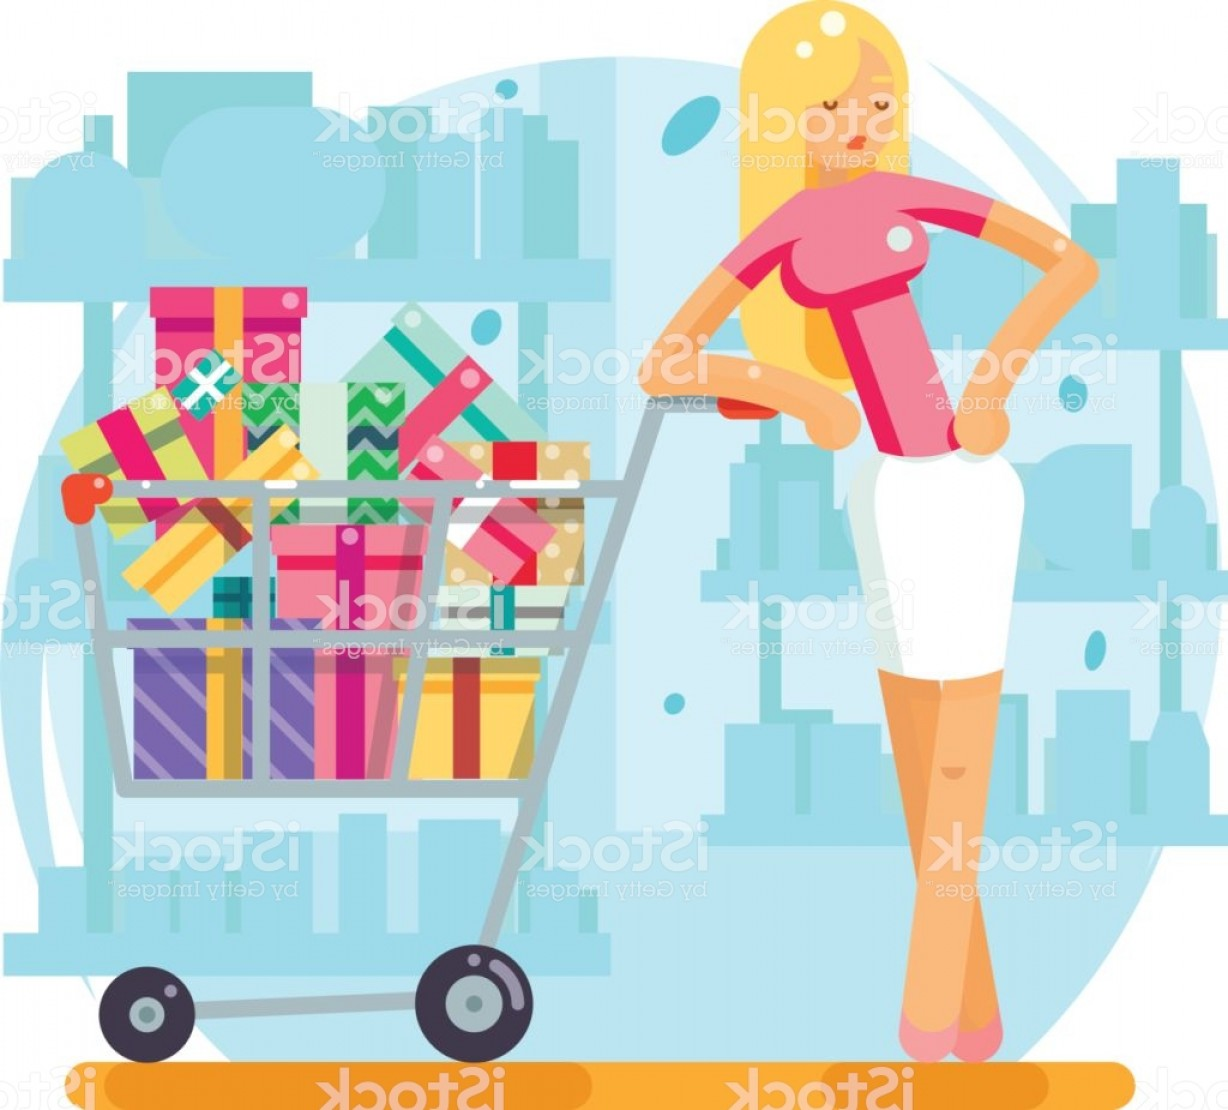 Purchase Vector Art: Shop Cart Shopping Woman Purchase Gift Flat Design Character Vector Illustration Gm